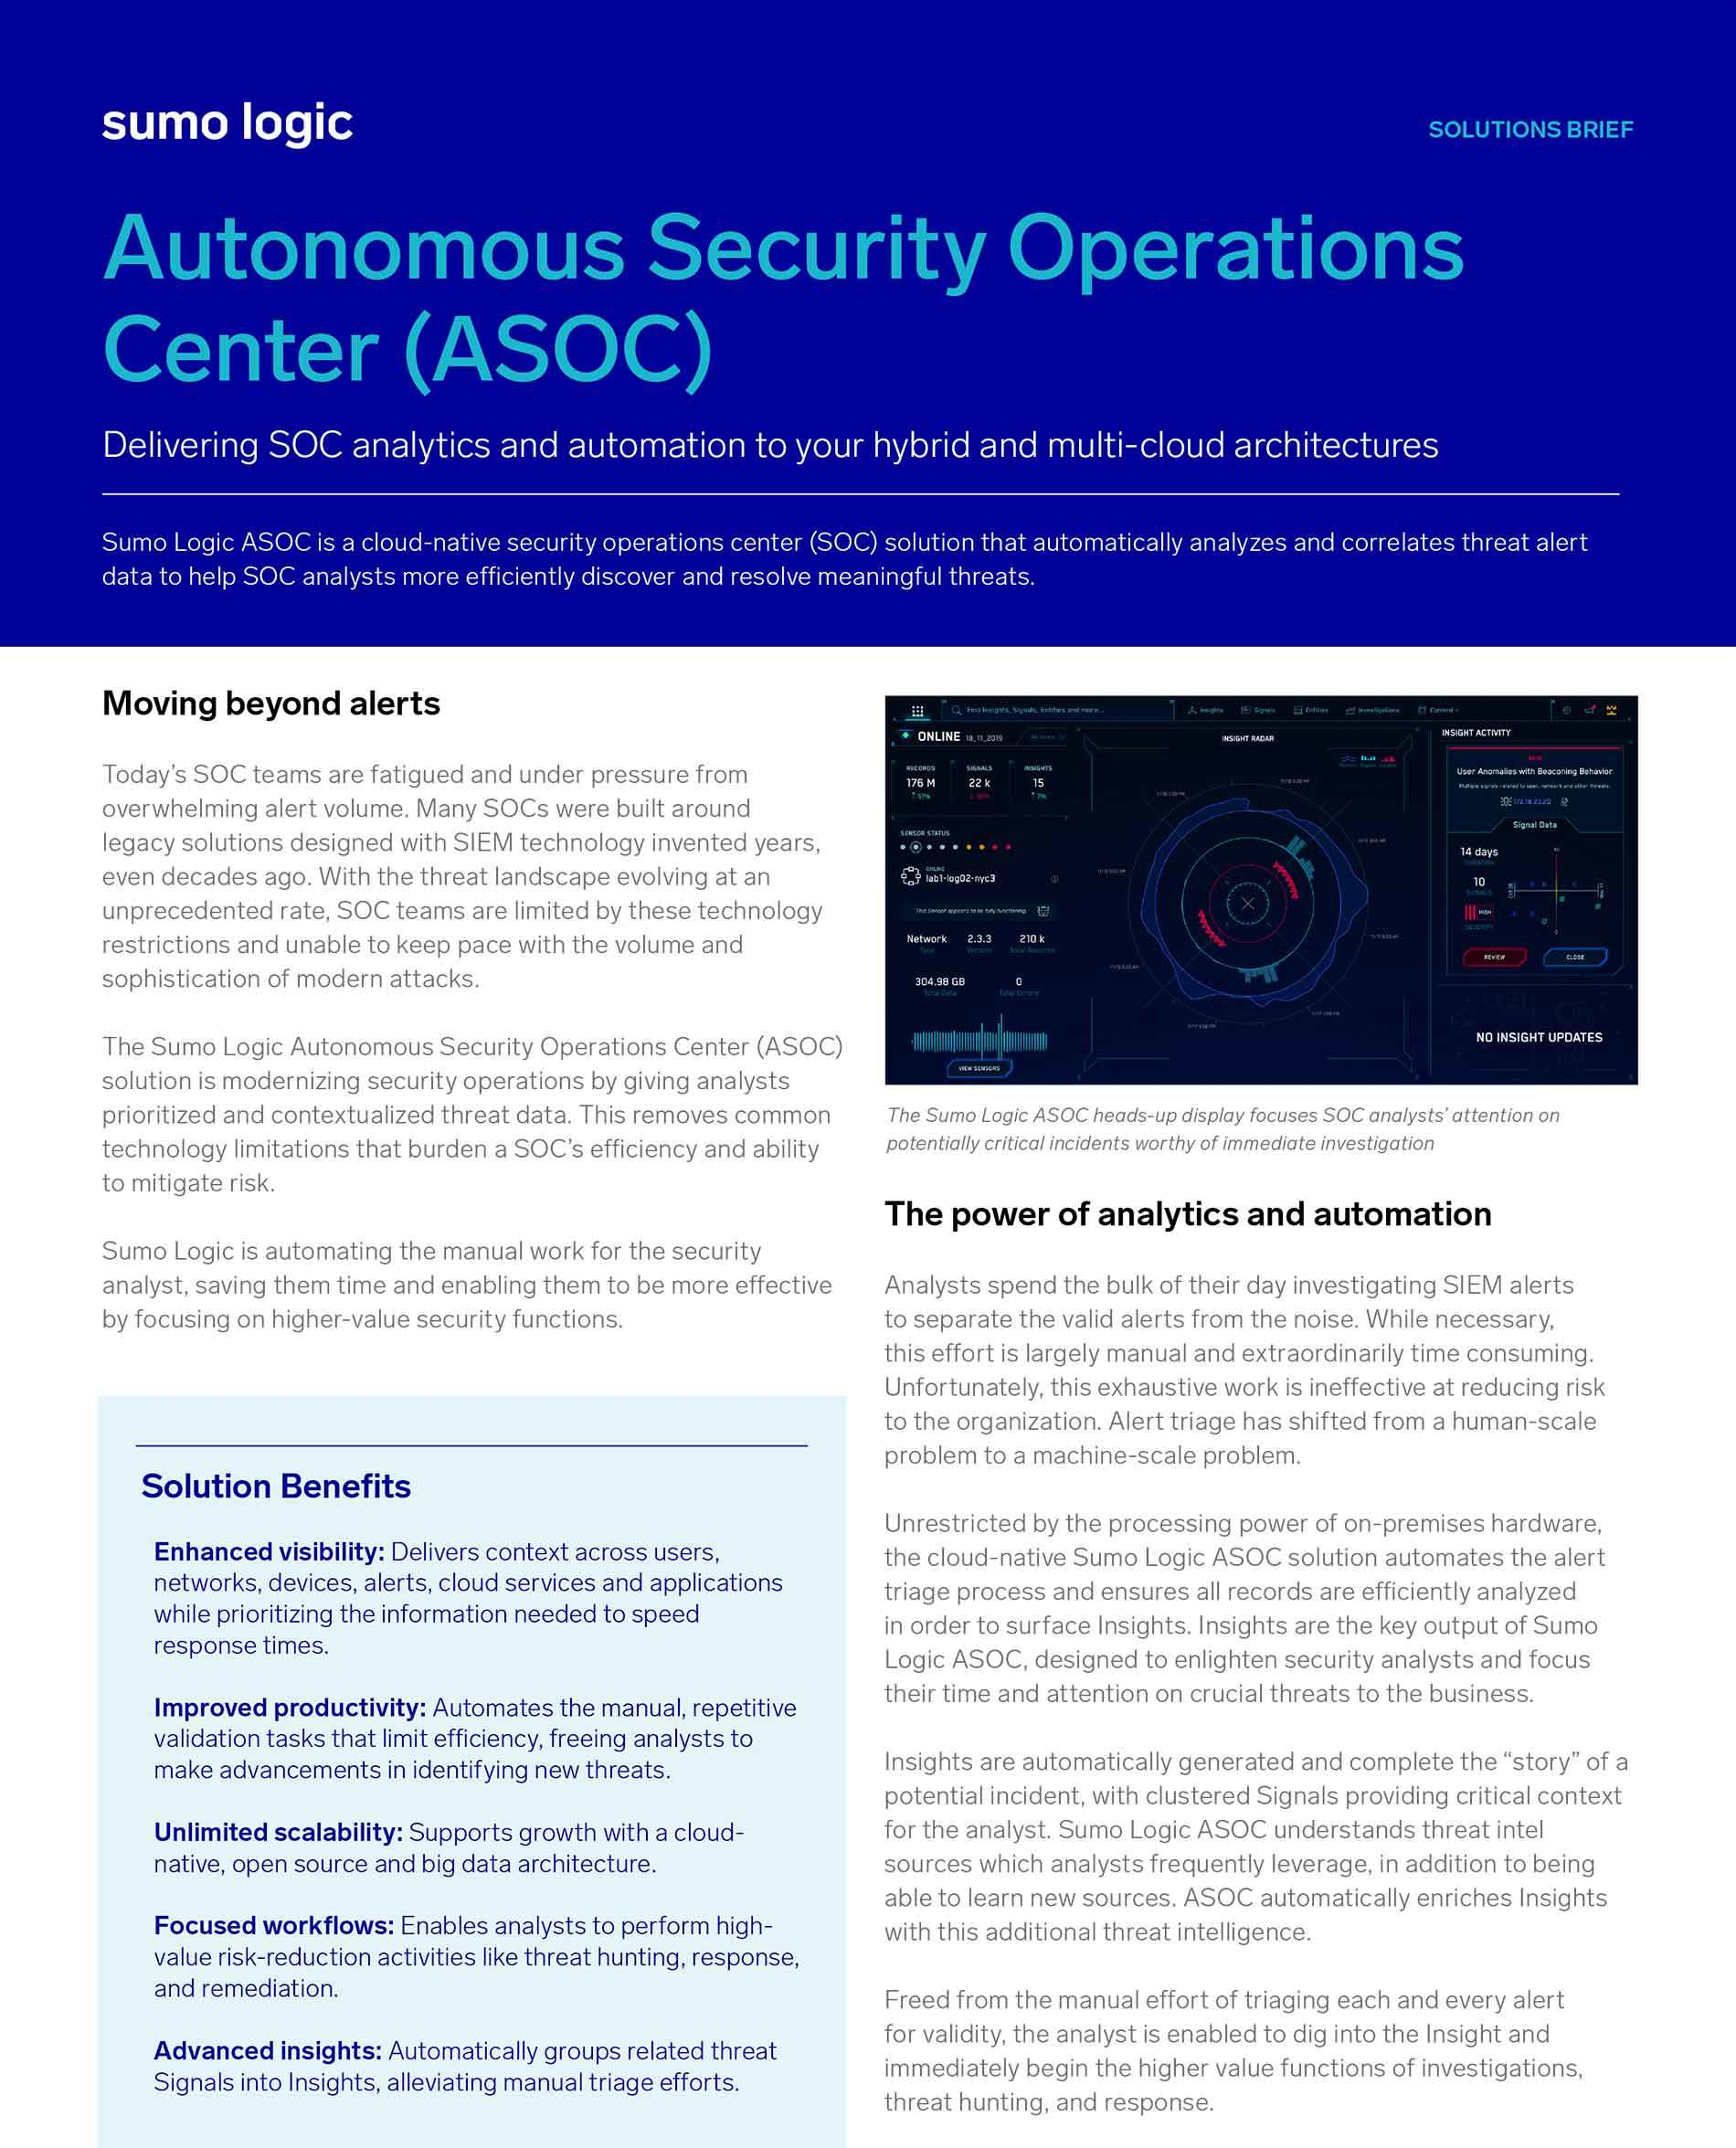 Autonomous Security Operations Center (ASOC)